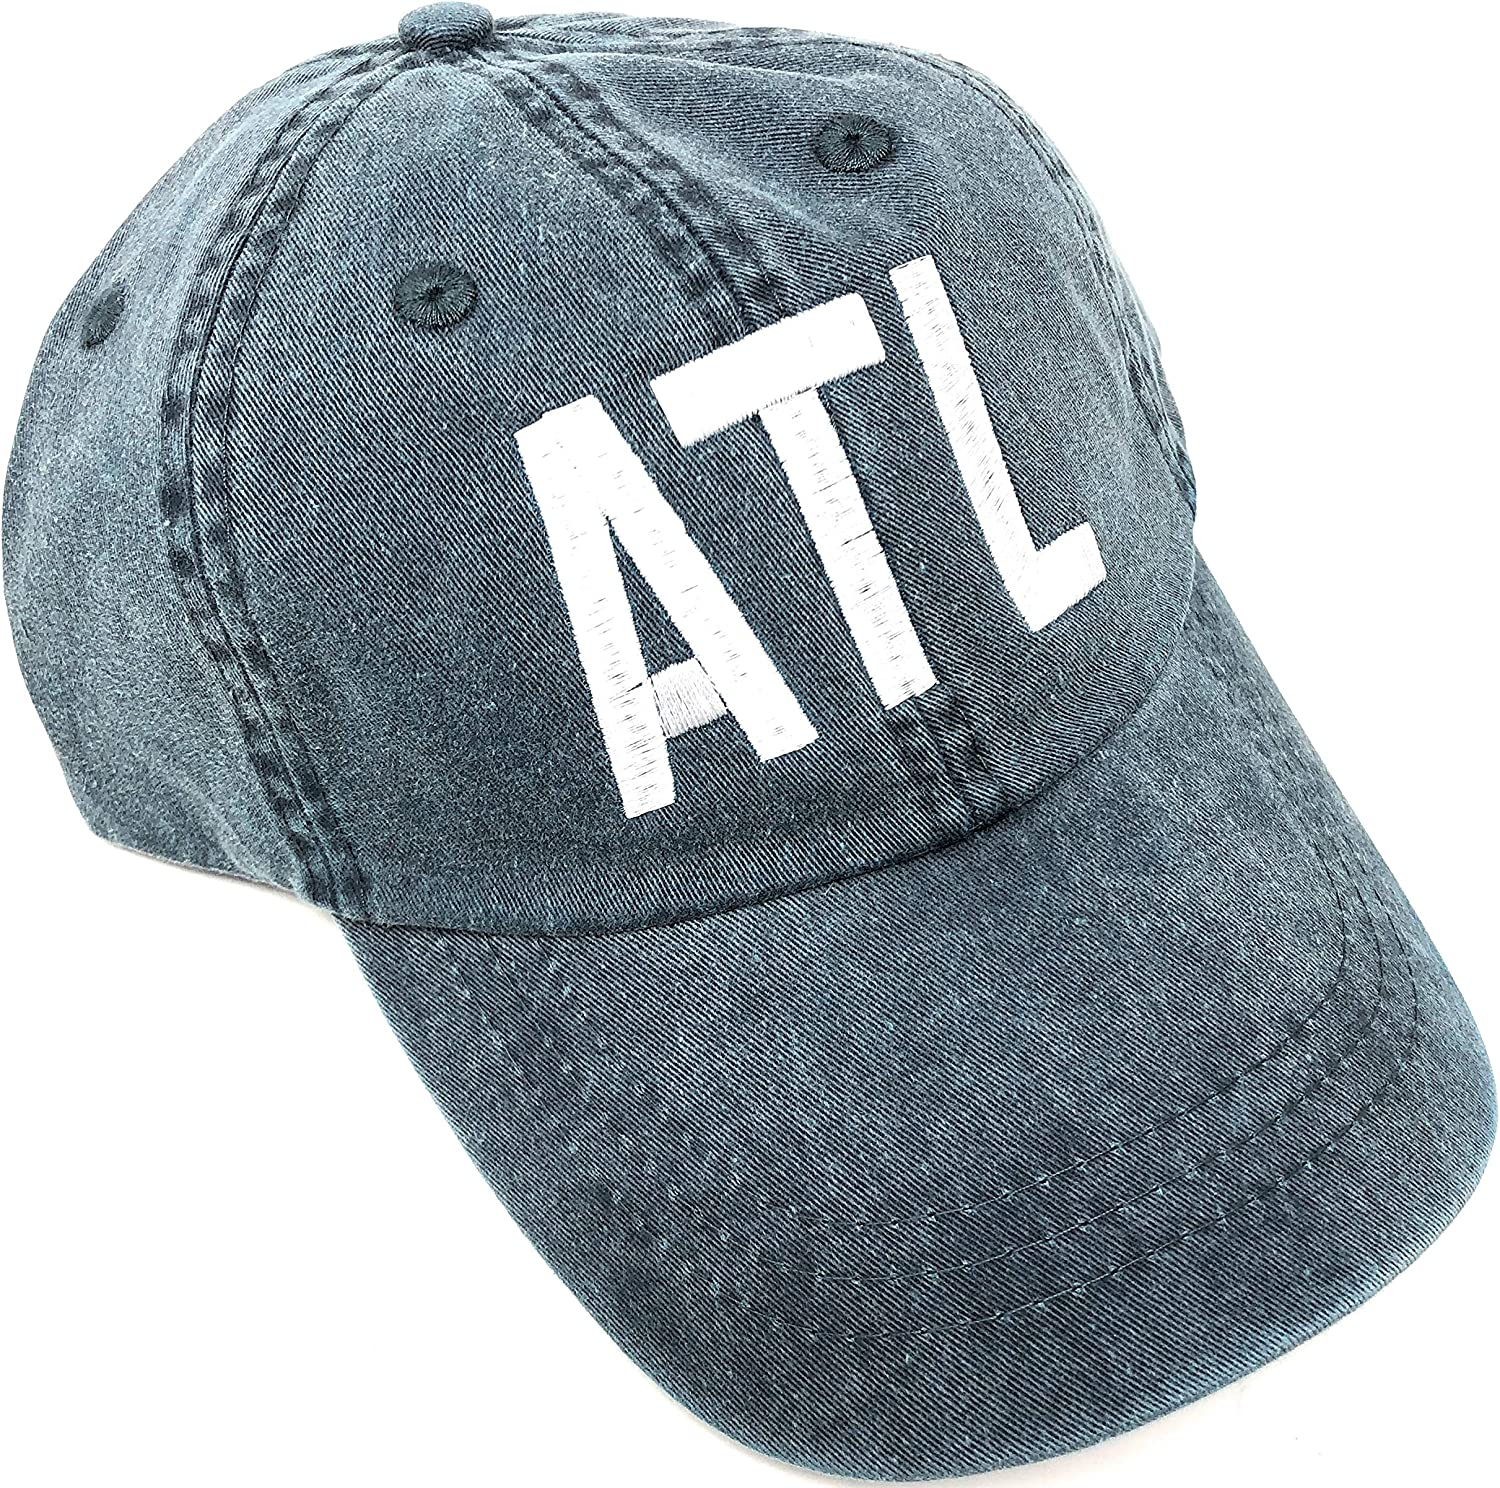 ATL Airport Code Baseball Hat - Pigment Dyed Navy Blue with White Letters